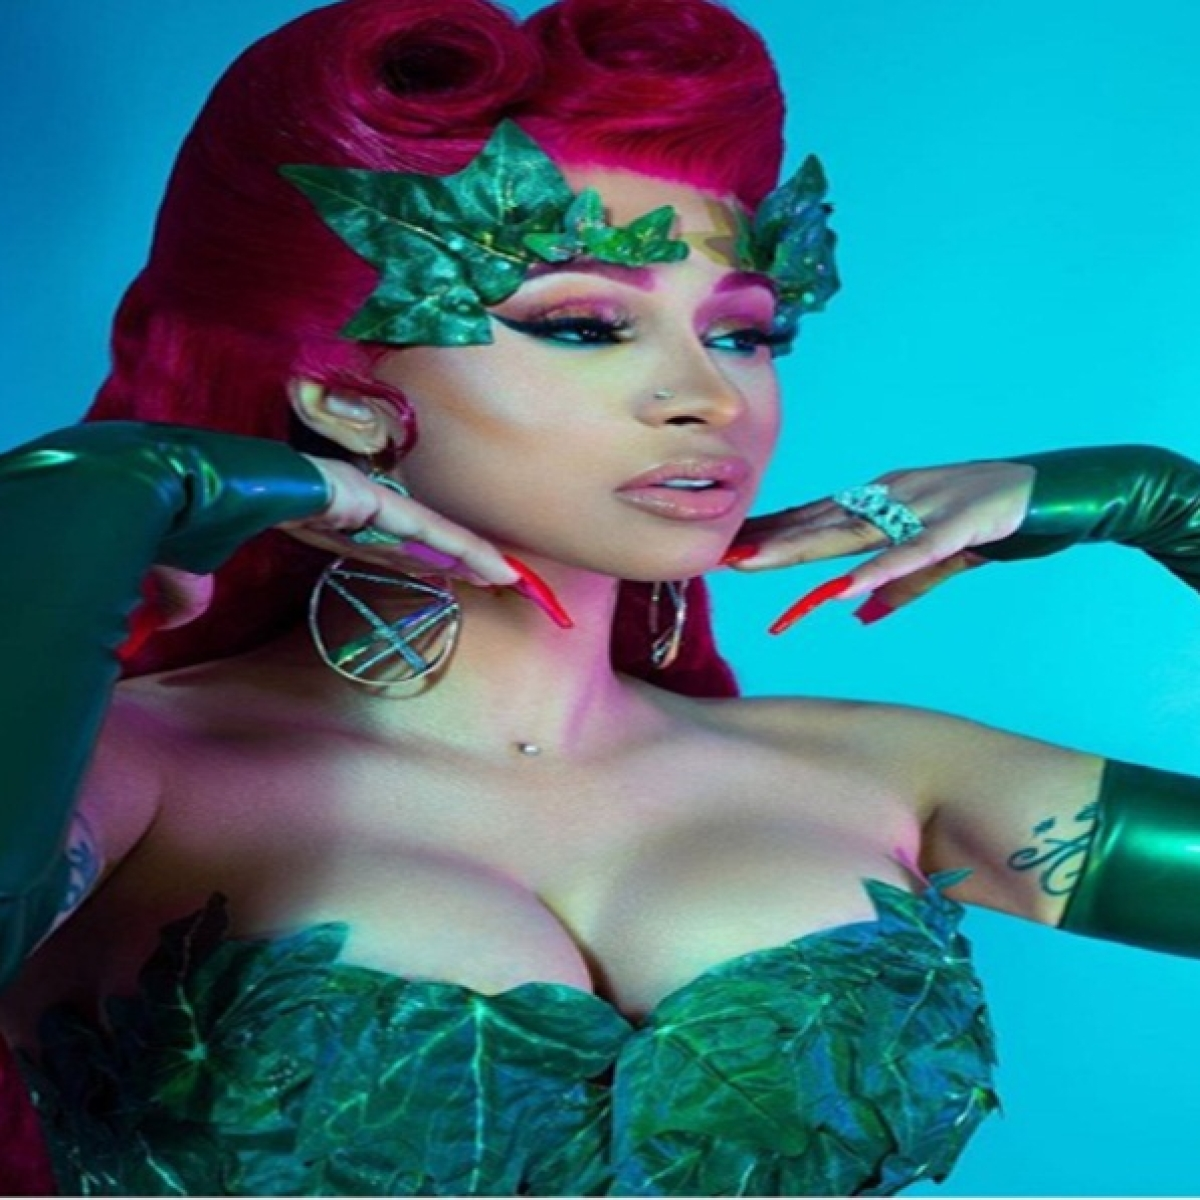 Cardi B shares adorable video of daughter Kulture Kiari dancing on a song